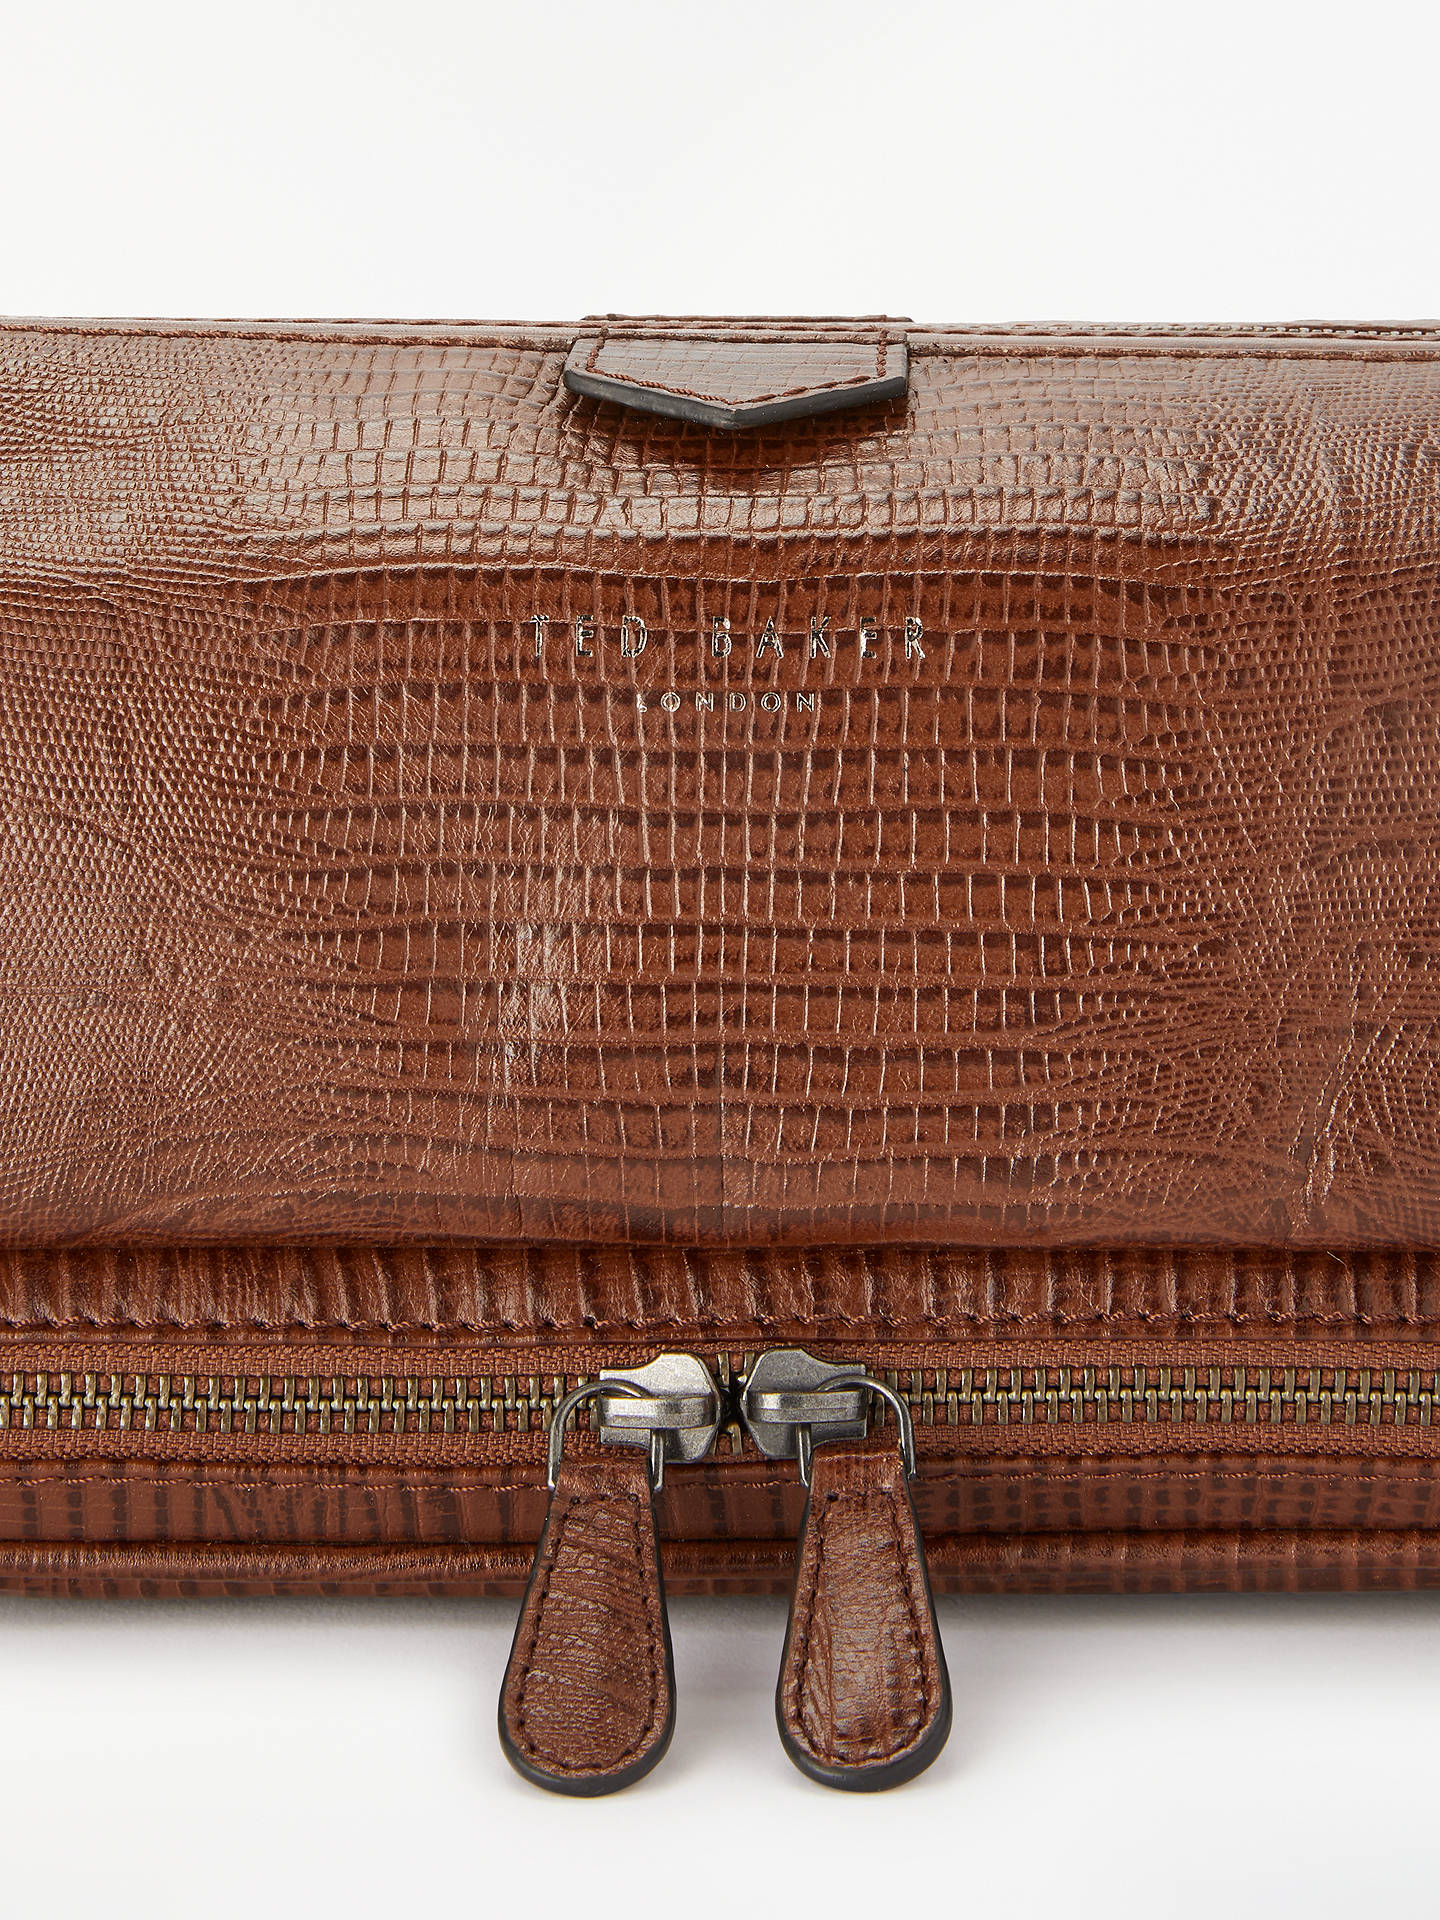 41a07a079 ... Buy Ted Baker Chocks Croc Effect Leather Wash Bag